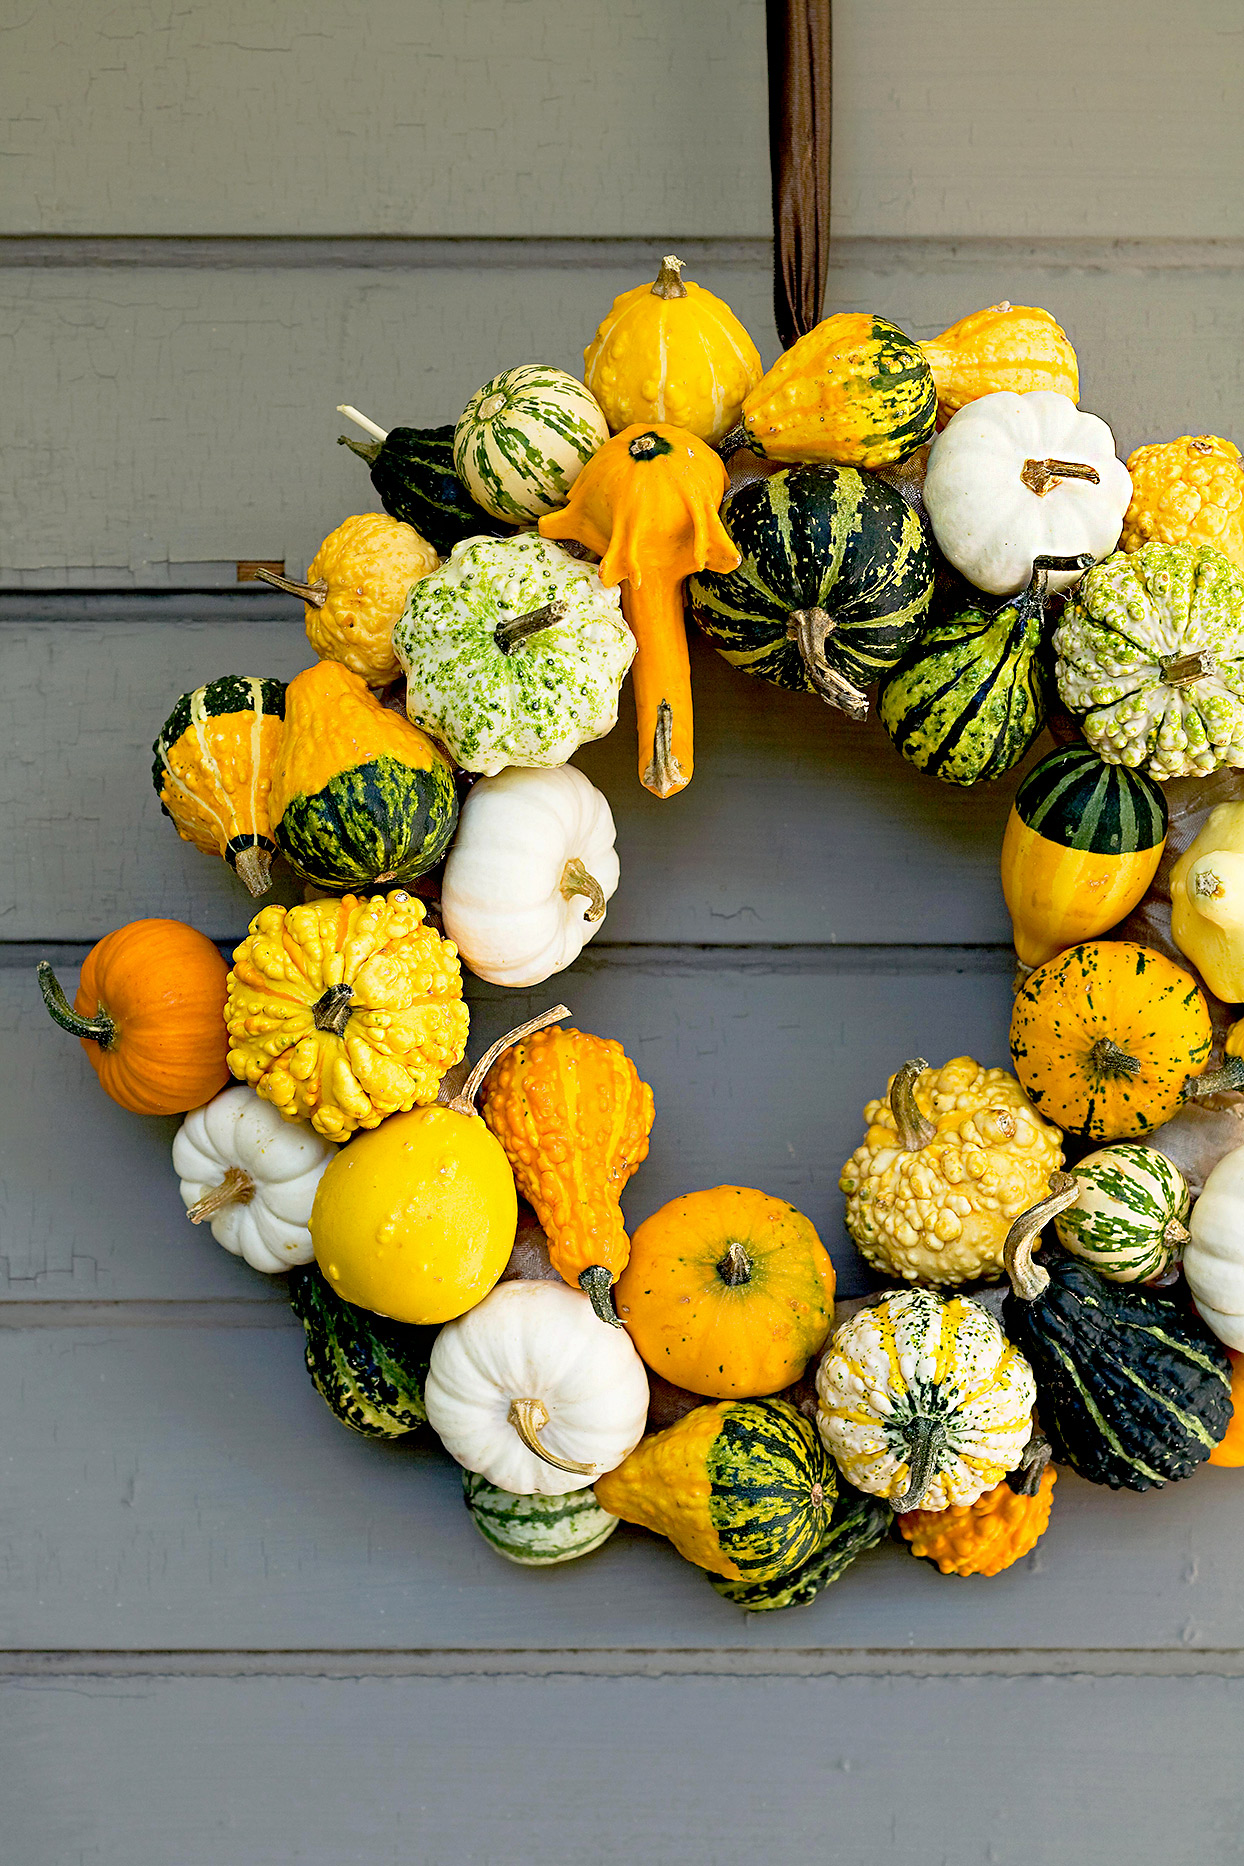 Wreath made of pumpkins and gourds